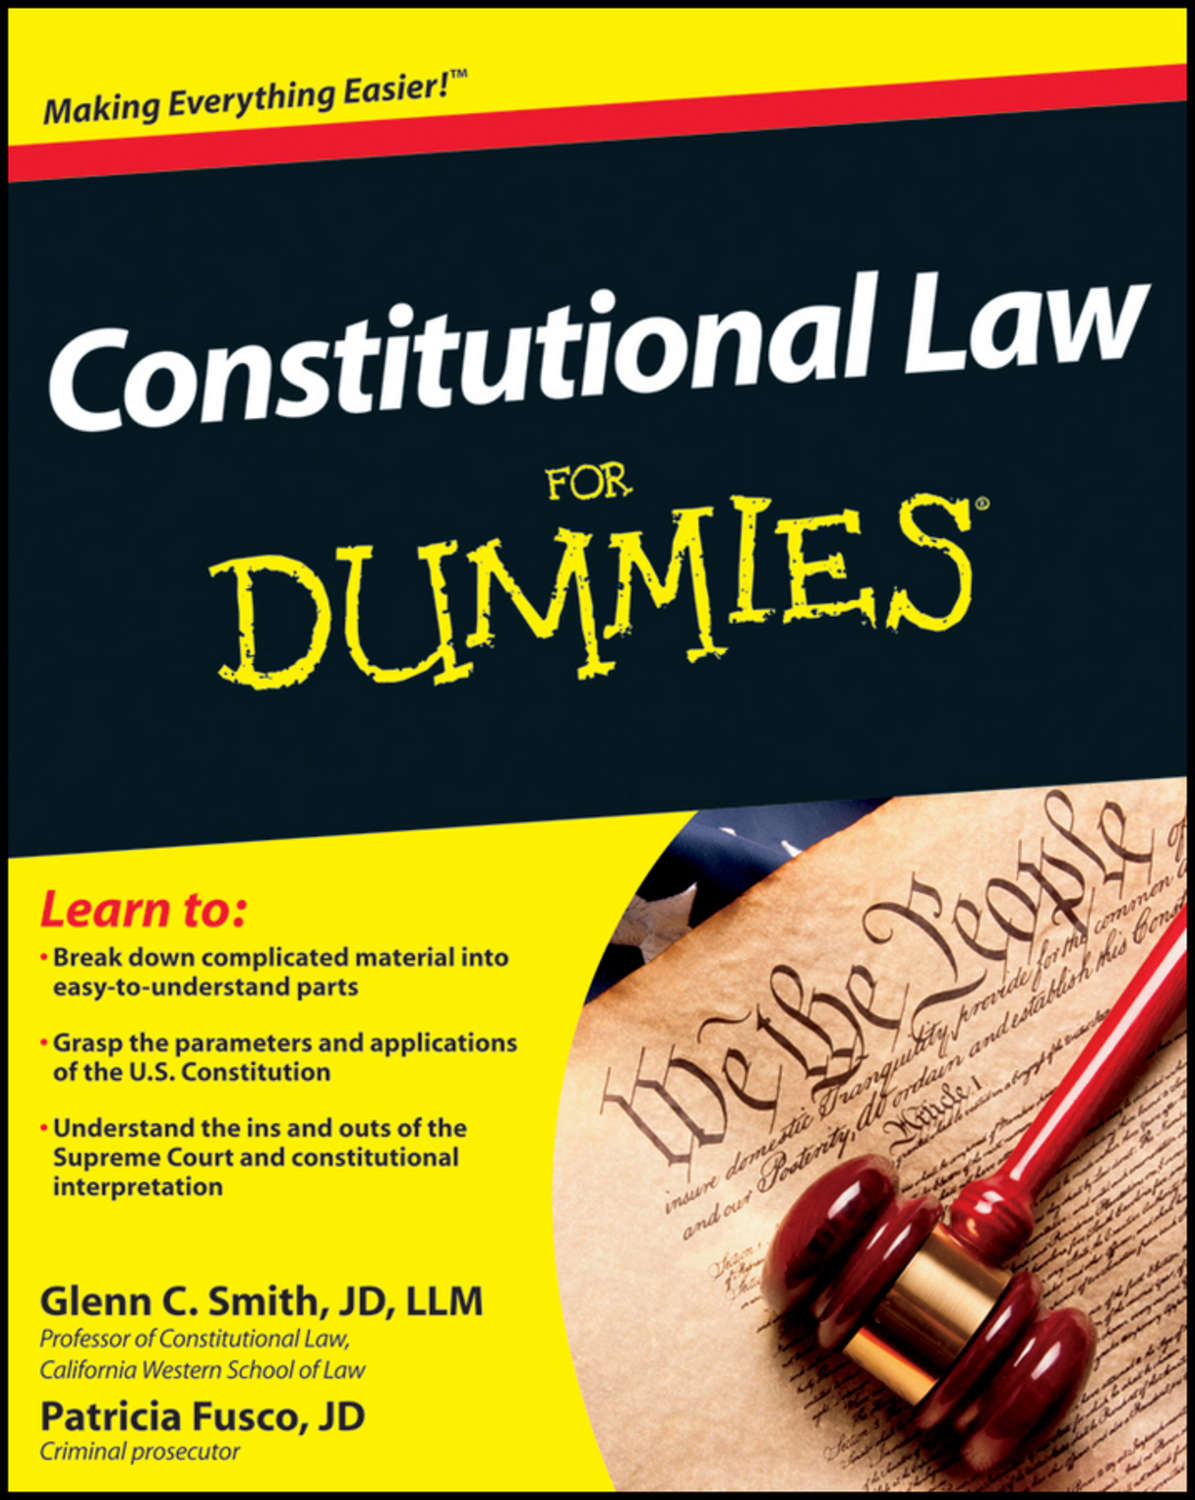 law and constitution Learn constitutional law in 90 minutes whether you are a new student starting the constitutional law this year or someone who is just about to sit for your constitutional law examinations, the law simplified course on constitutional law will give you a fast-track summery of the subject.